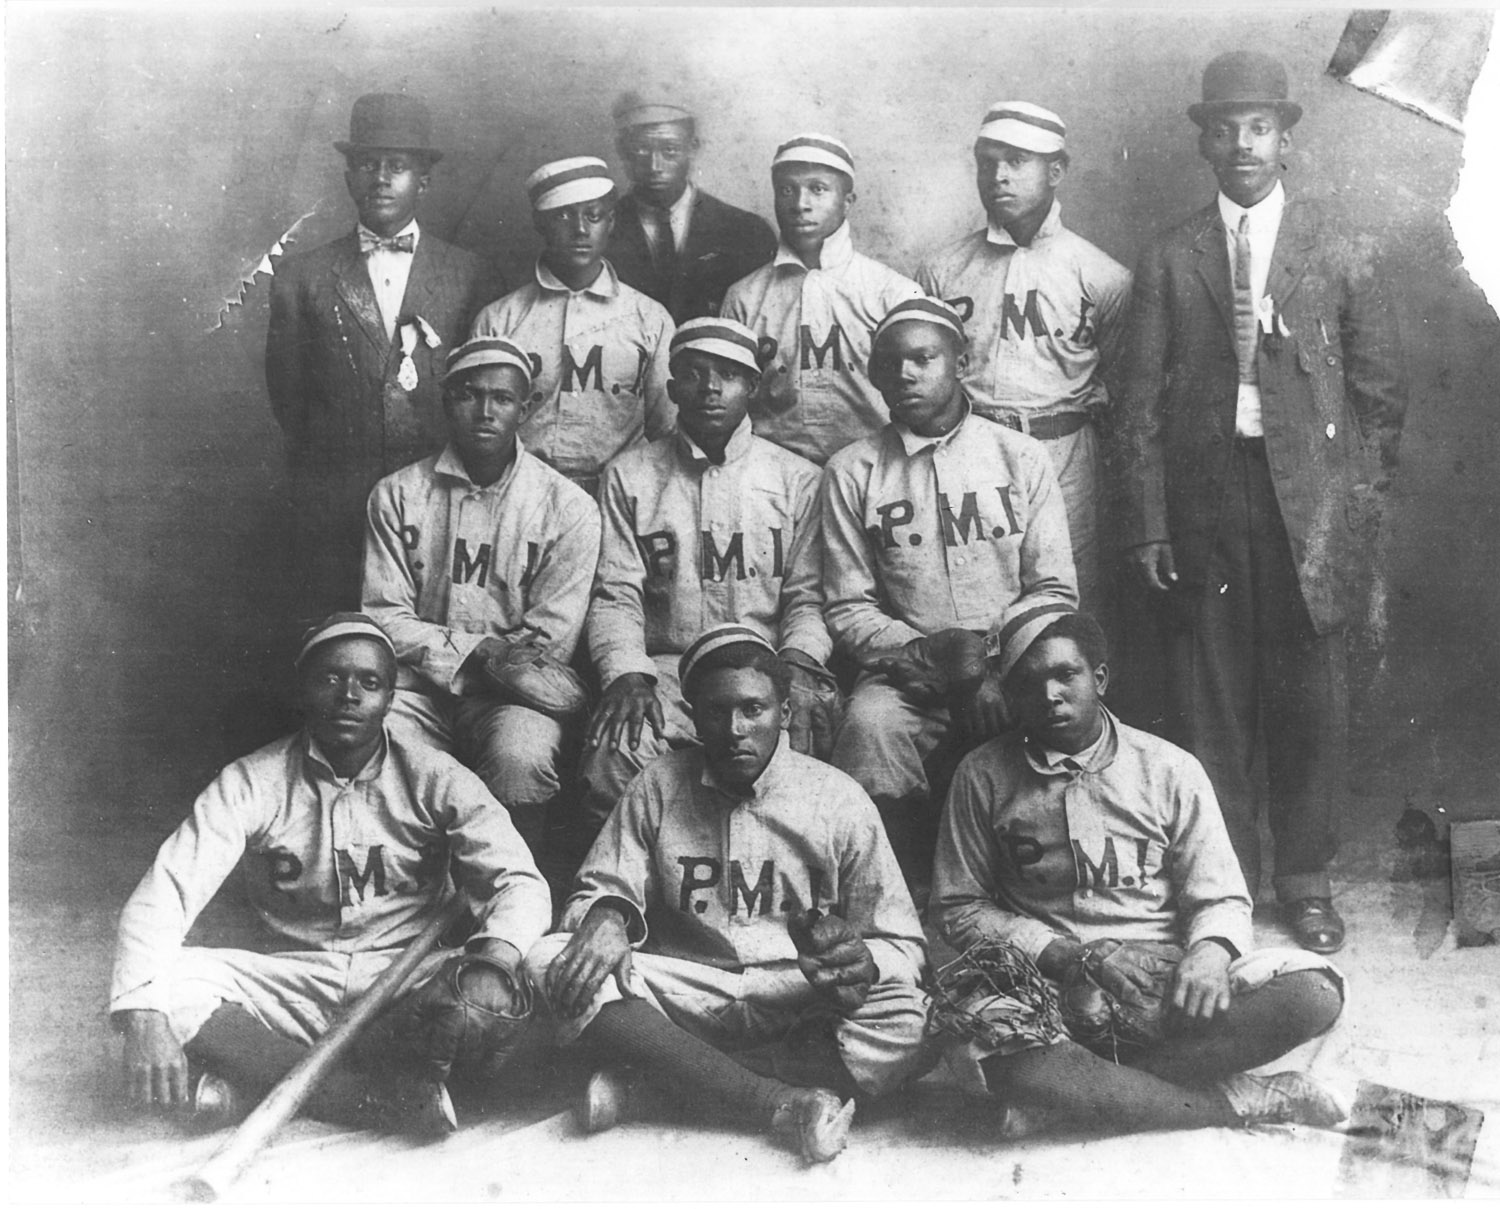 PMI Men's Baseball Team, 1918